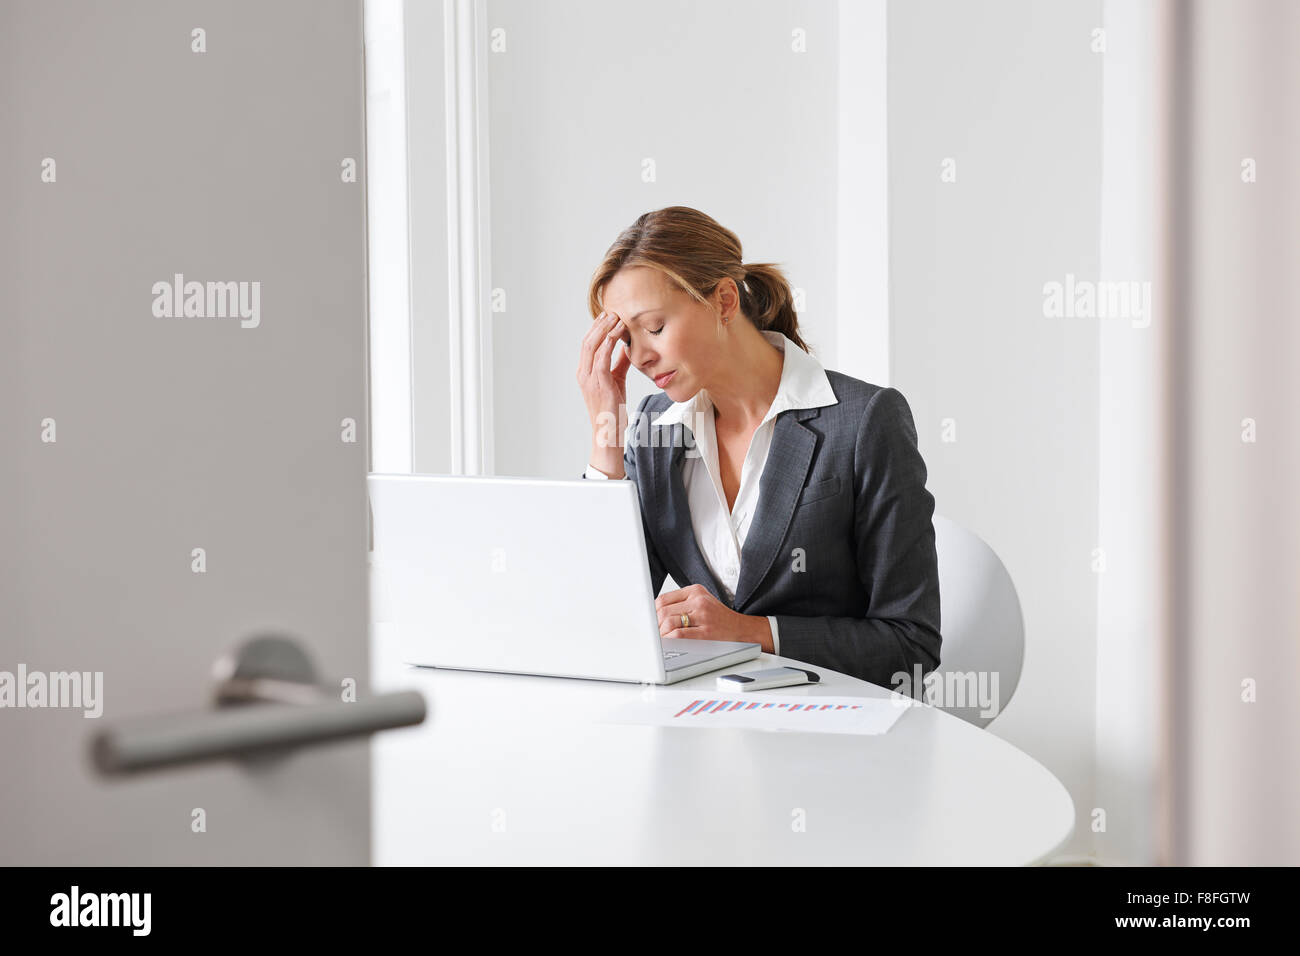 Stressed Businesswoman Working In Office - Stock Image